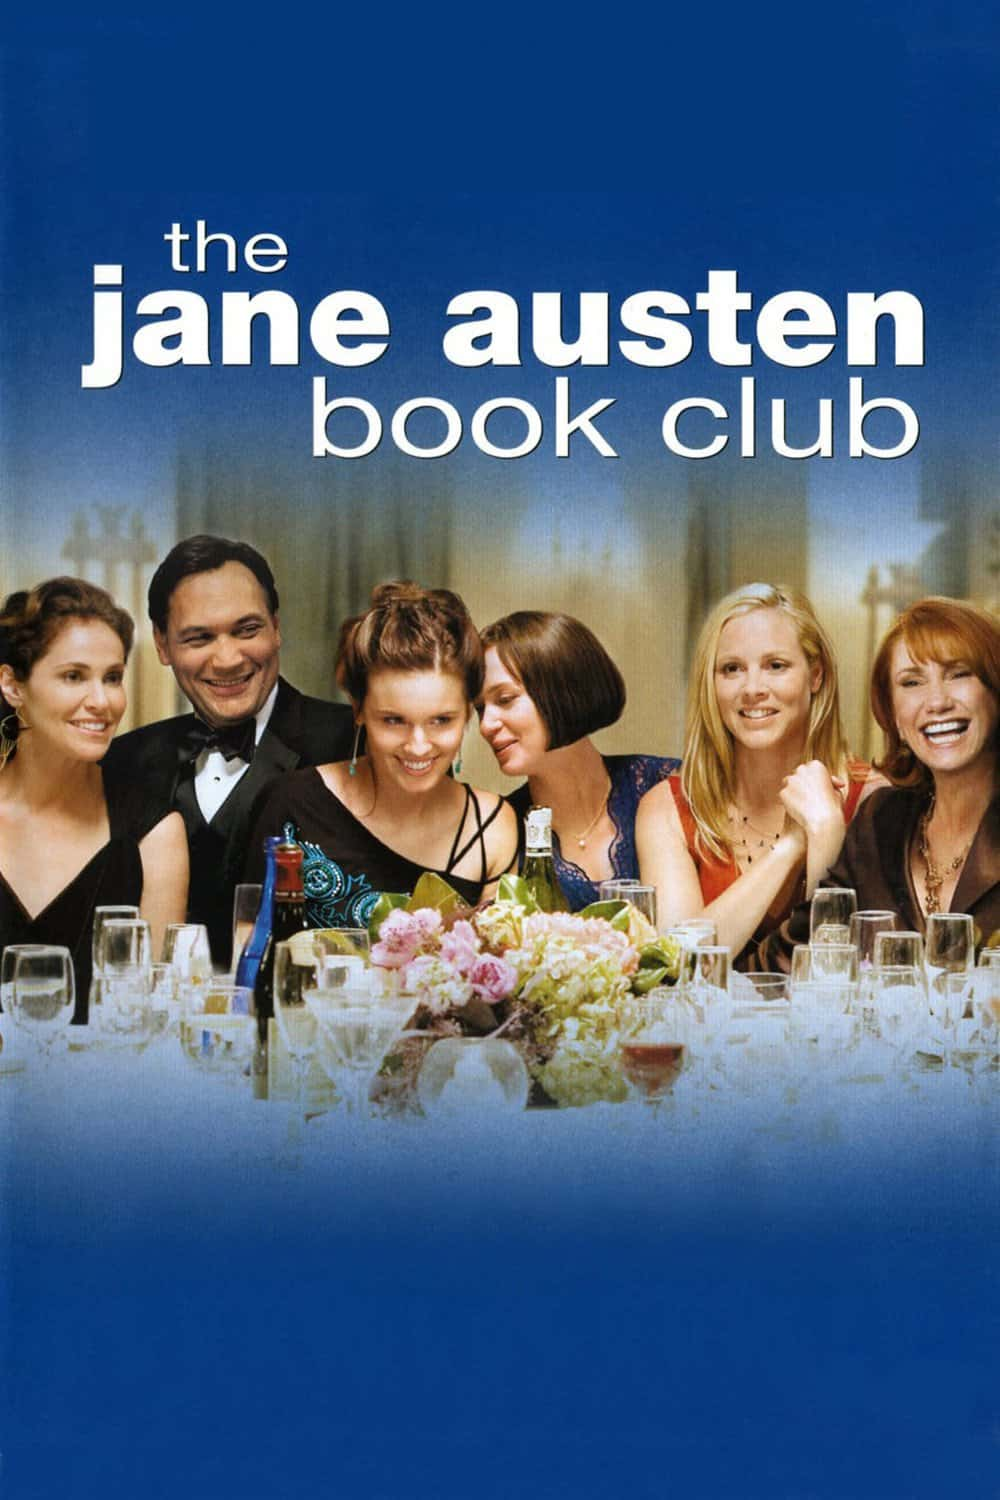 The Jane Austen Book Club, 2007